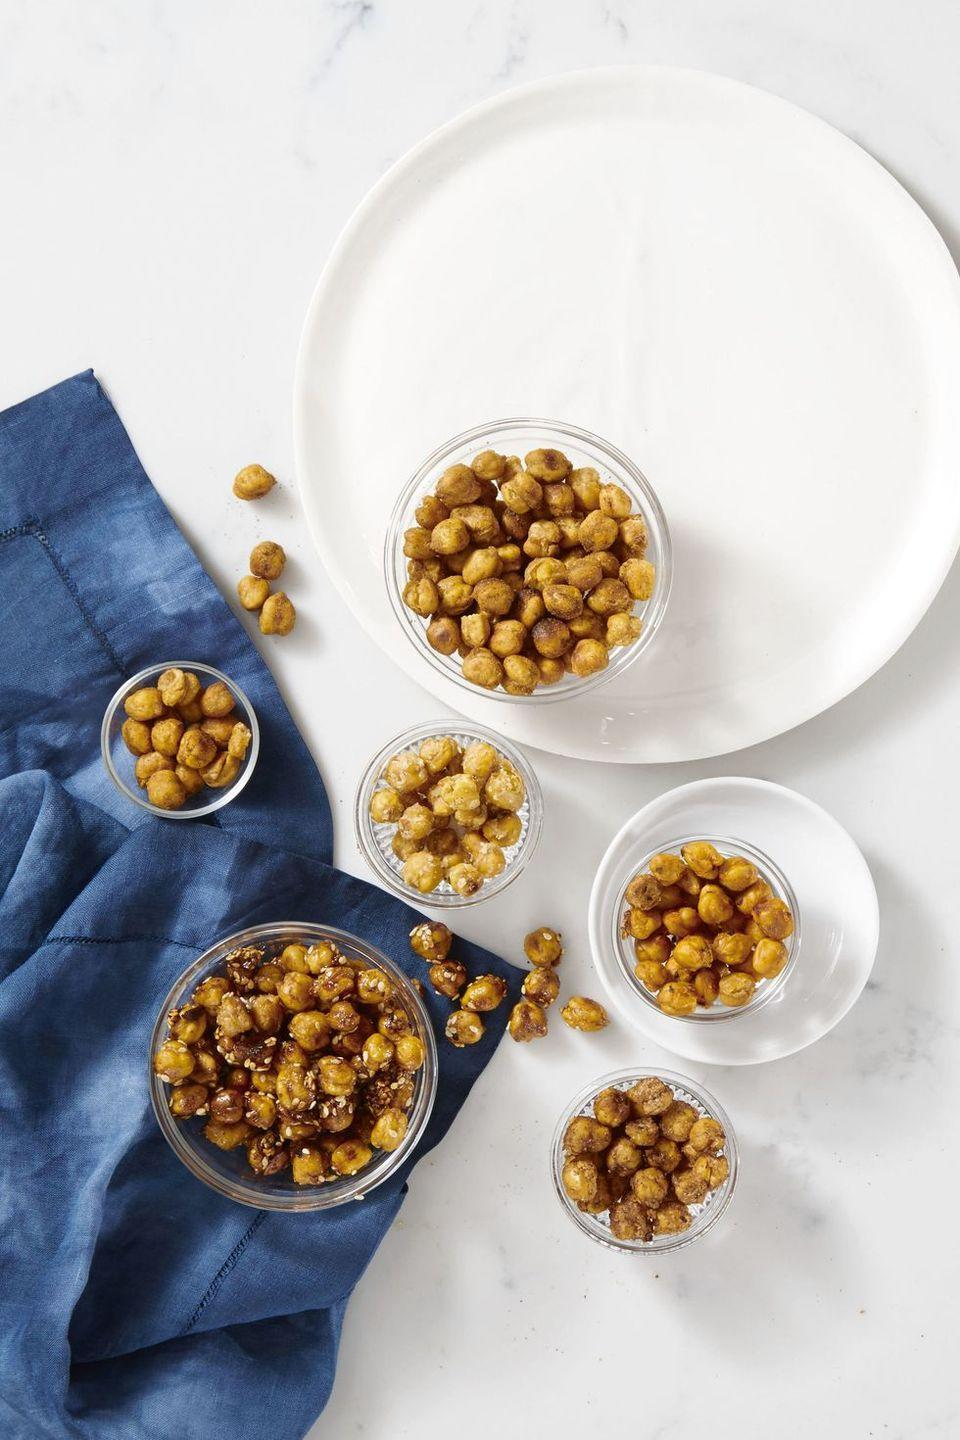 """<p>Make crispy chickpeas in the air fryer instead of the oven for a protein-packed snack.</p><p><em><a href=""""https://www.goodhousekeeping.com/food-recipes/a40814/chickpea-nuts-recipe/"""" rel=""""nofollow noopener"""" target=""""_blank"""" data-ylk=""""slk:Get the recipe for Chickpea &quot;Nuts&quot; »"""" class=""""link rapid-noclick-resp"""">Get the recipe for Chickpea """"Nuts"""" »</a></em></p>"""